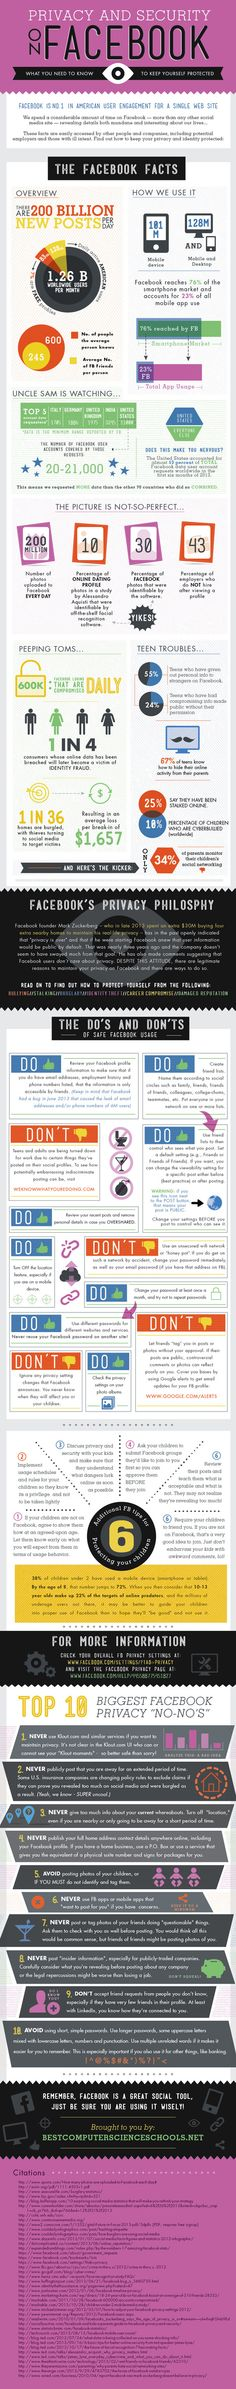 Infographic:  Everything you need to know about privacy on Facebook #infographic